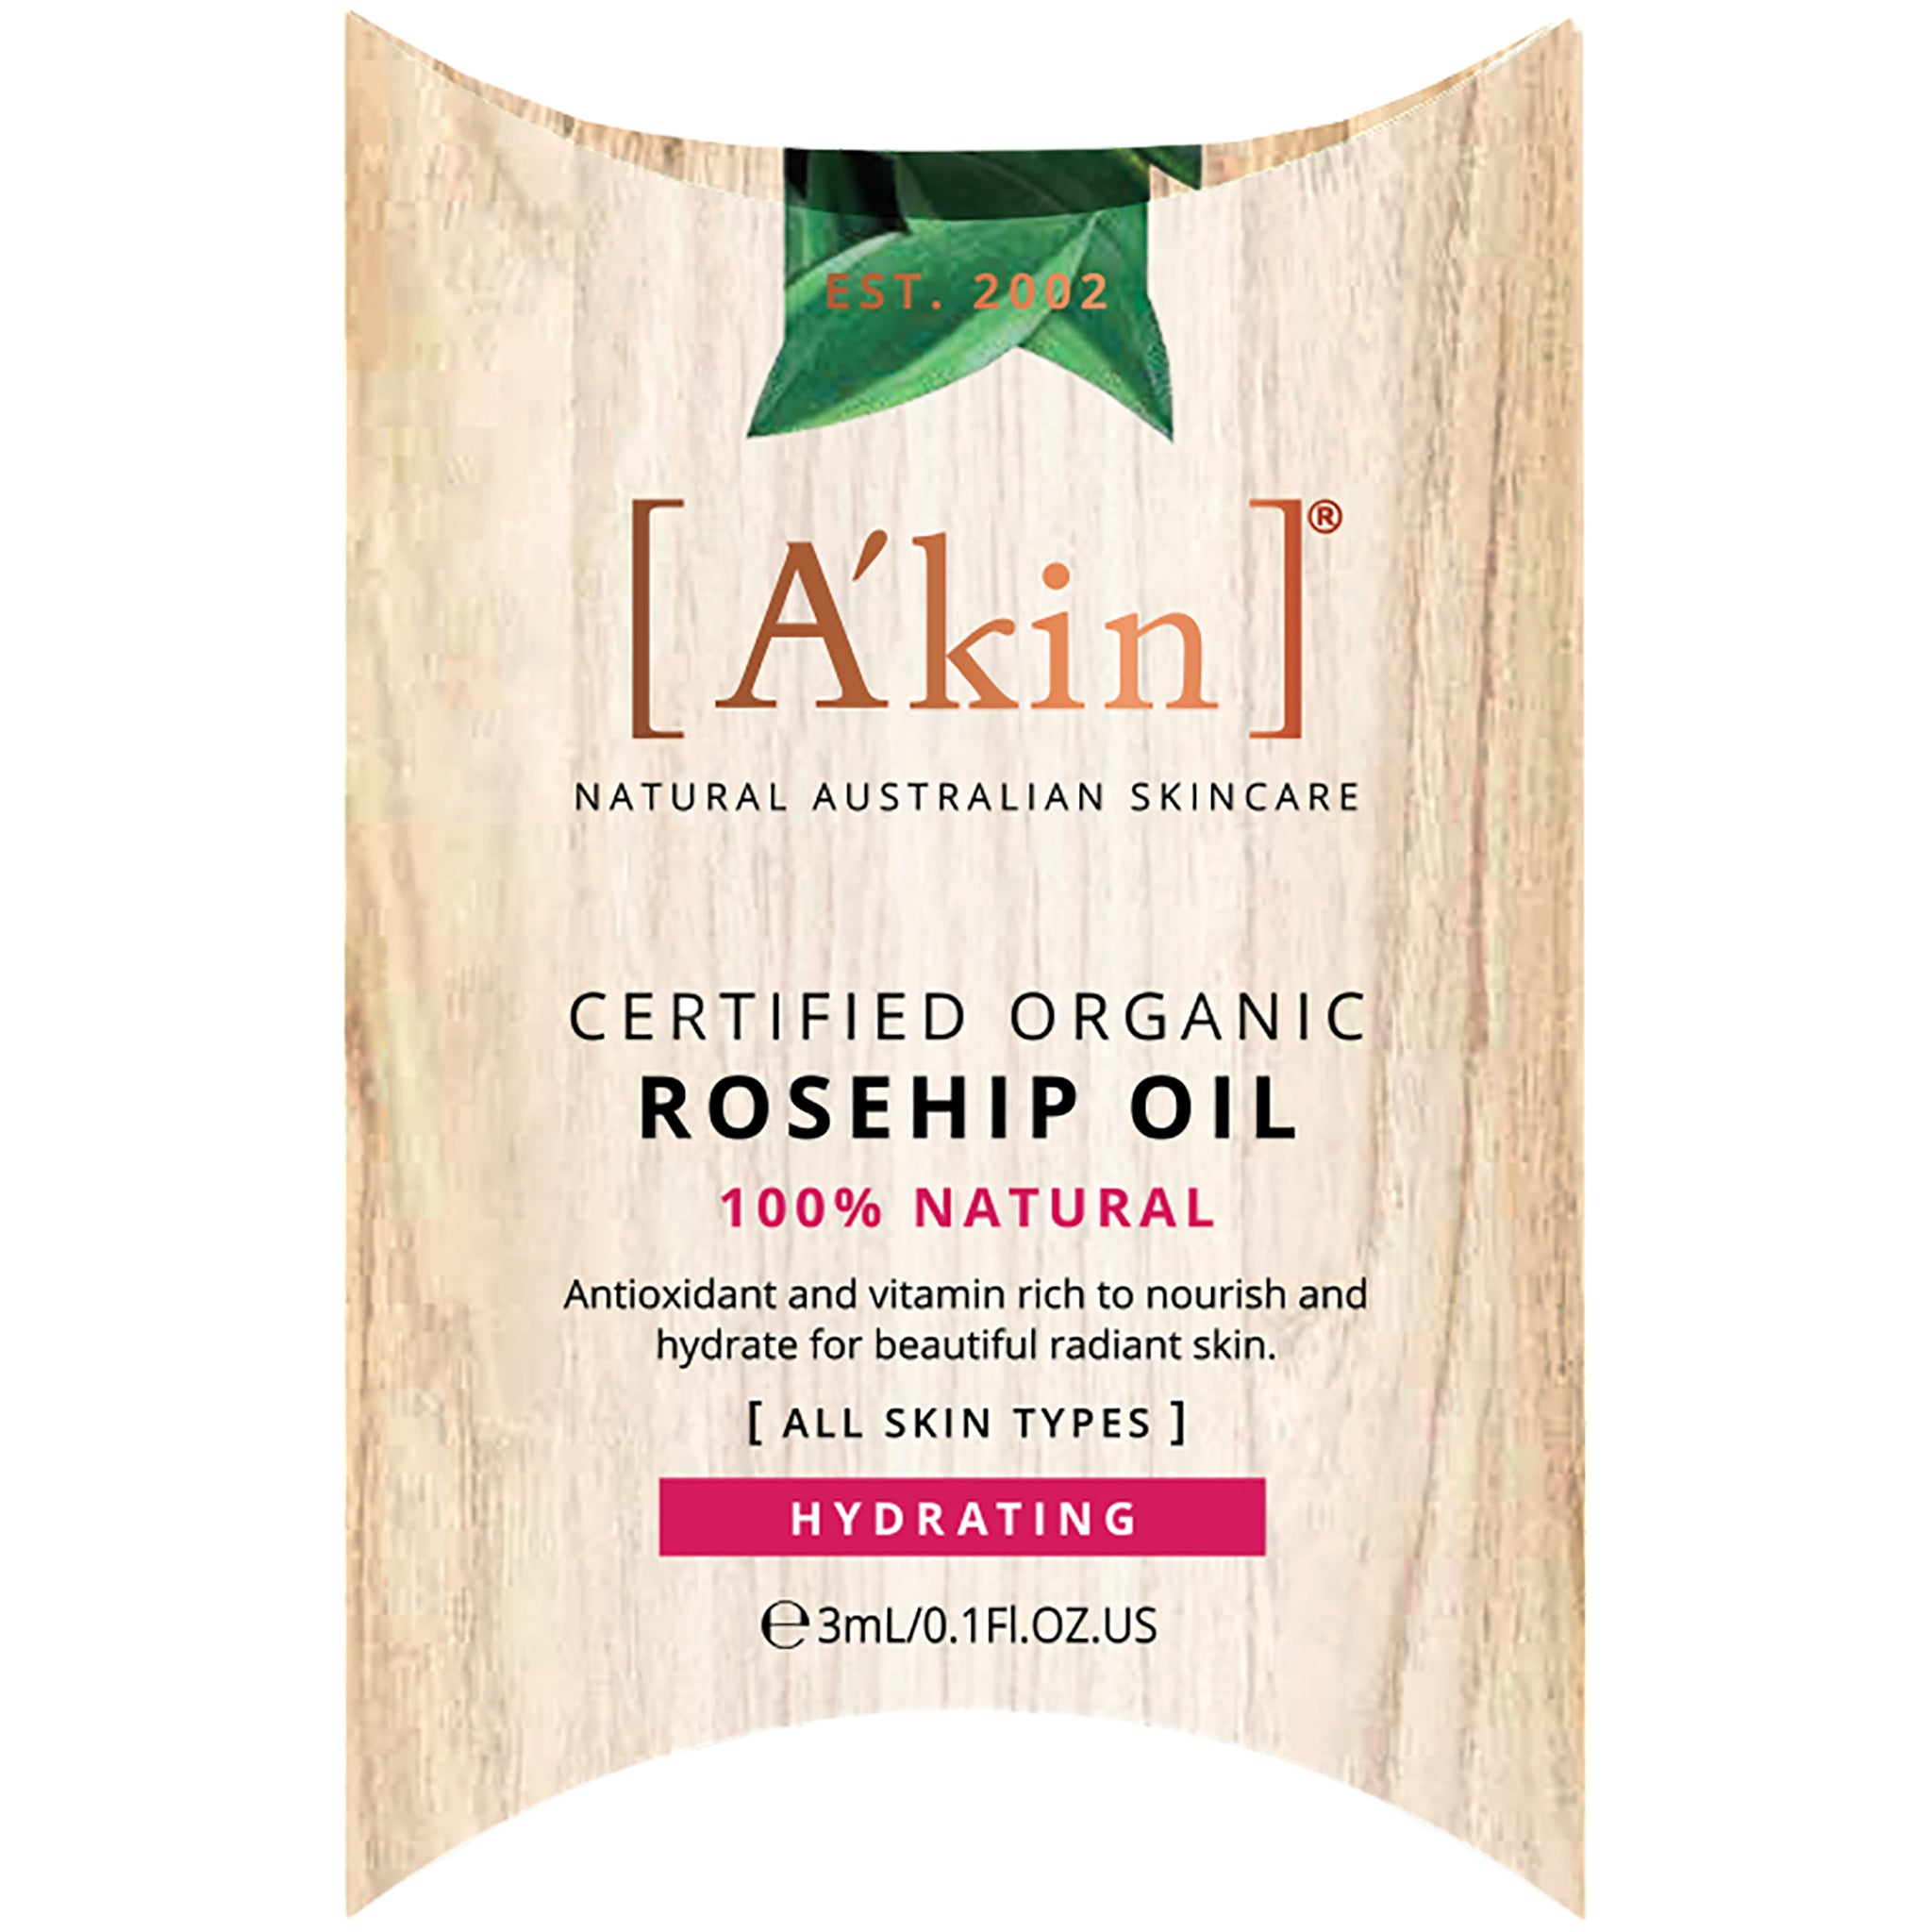 Certified Organic 100% Natural Rosehip Oil